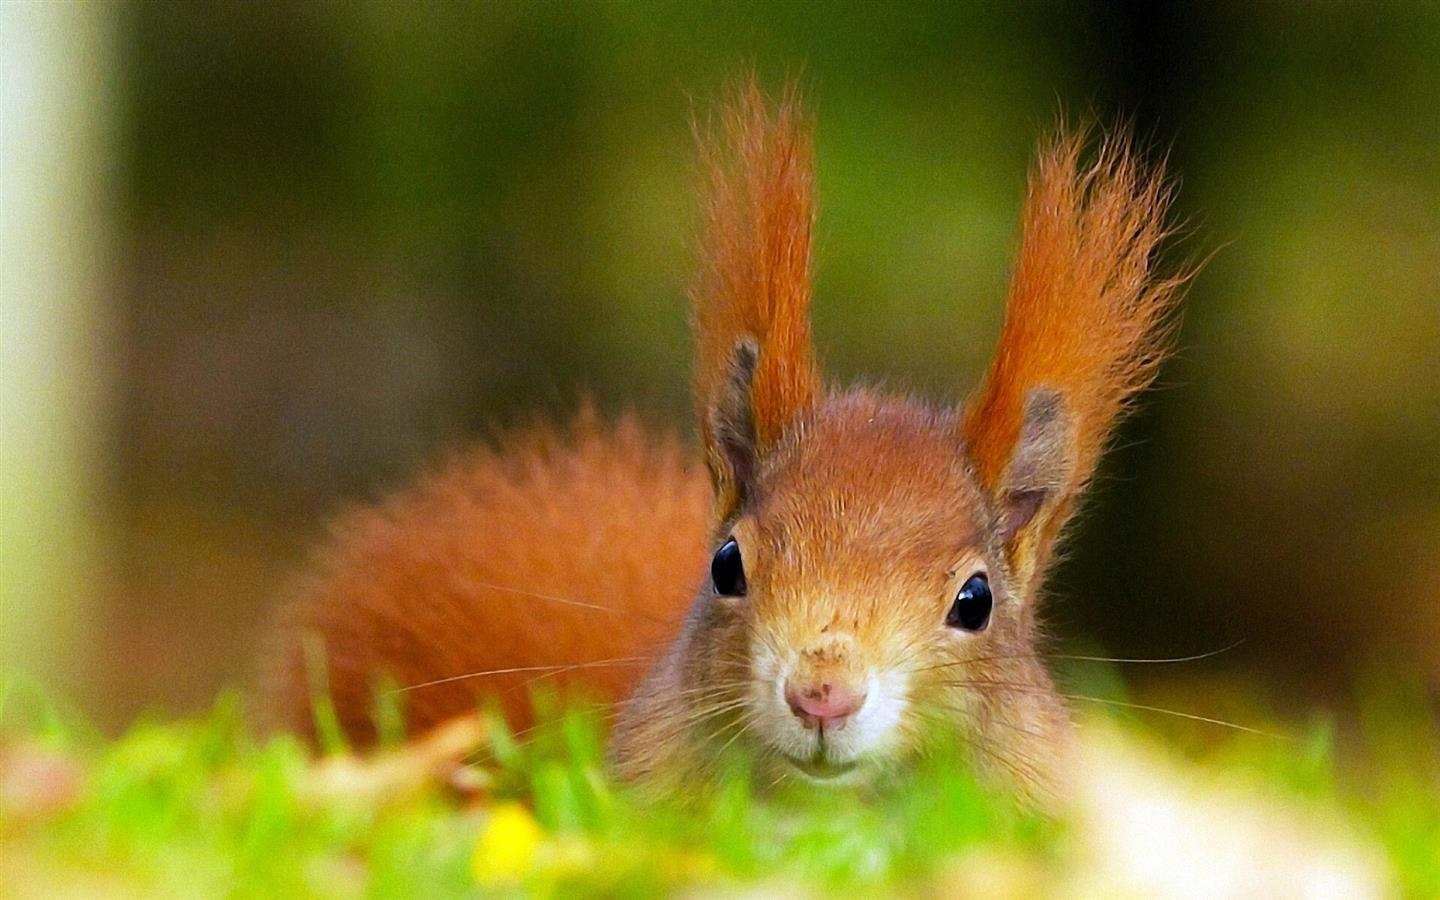 1440x900 HD Image Background of Animal Squirrel